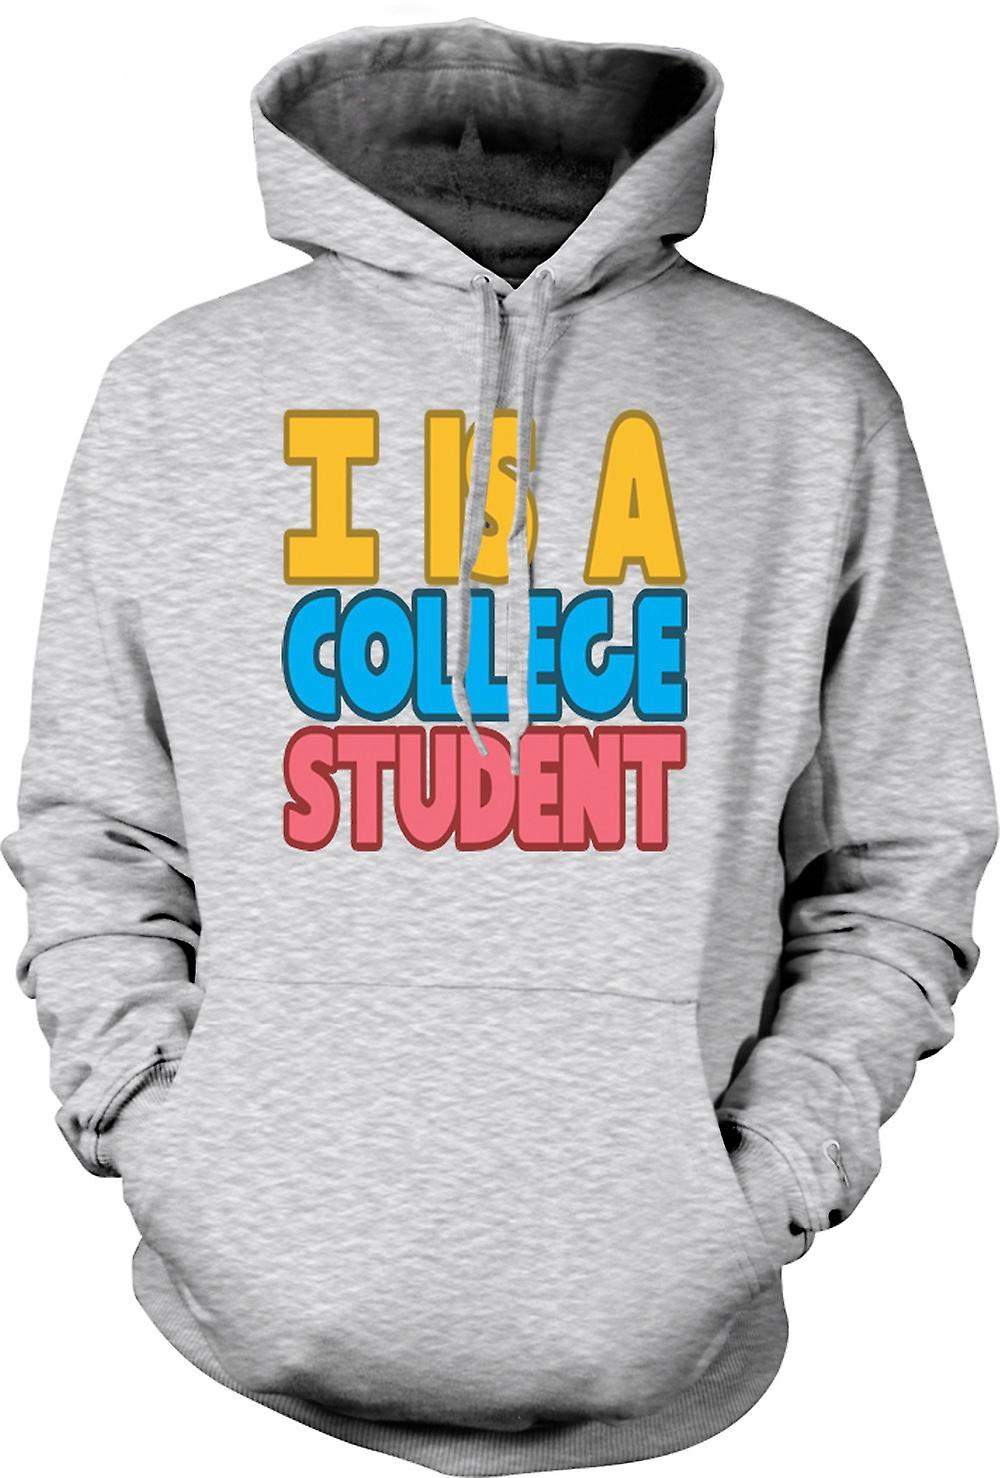 Mens Hoodie - I Is A College Student - Quote